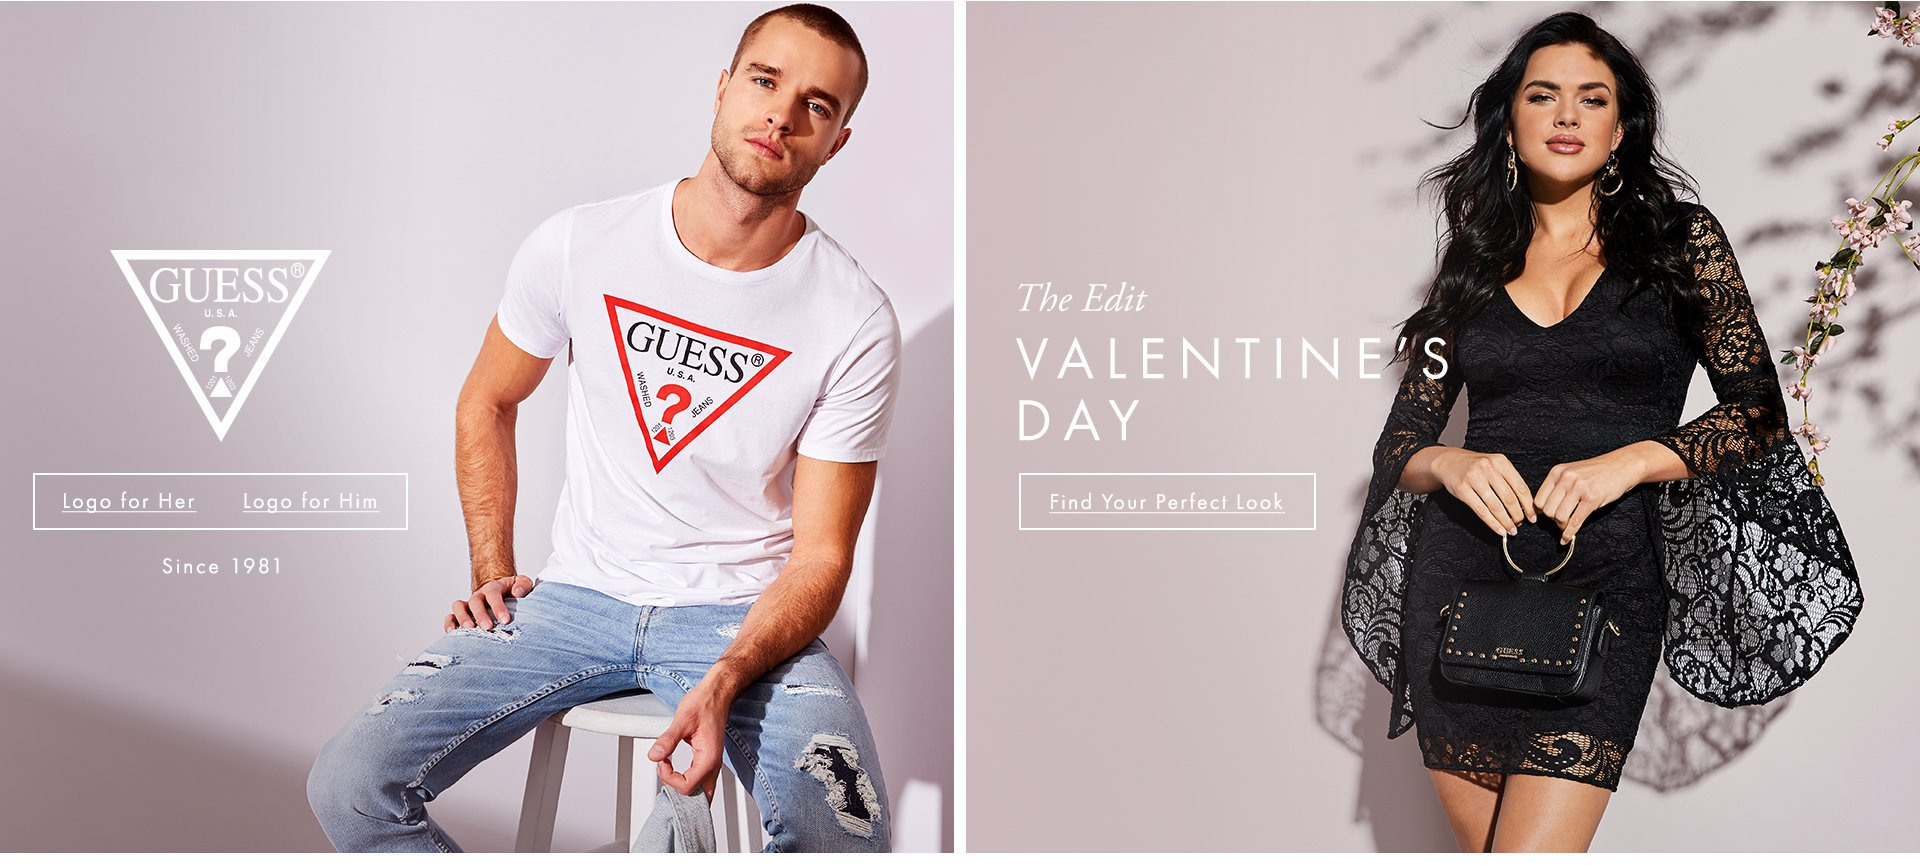 Shop GUESS? Valentine's Day and Logo